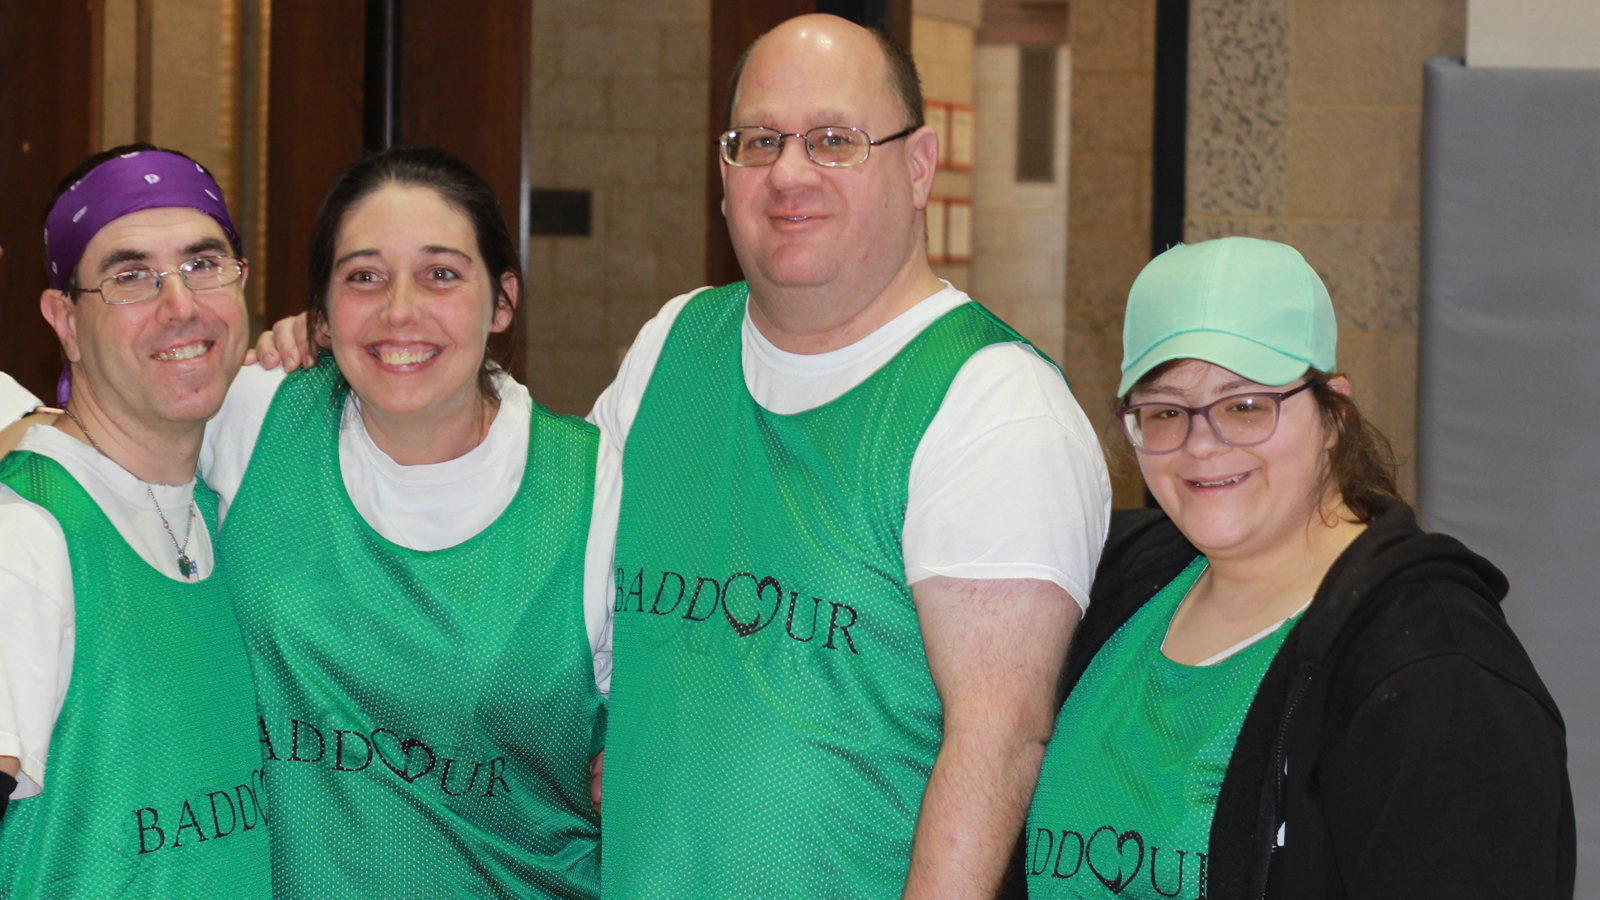 Special Olympics at The Baddour Center